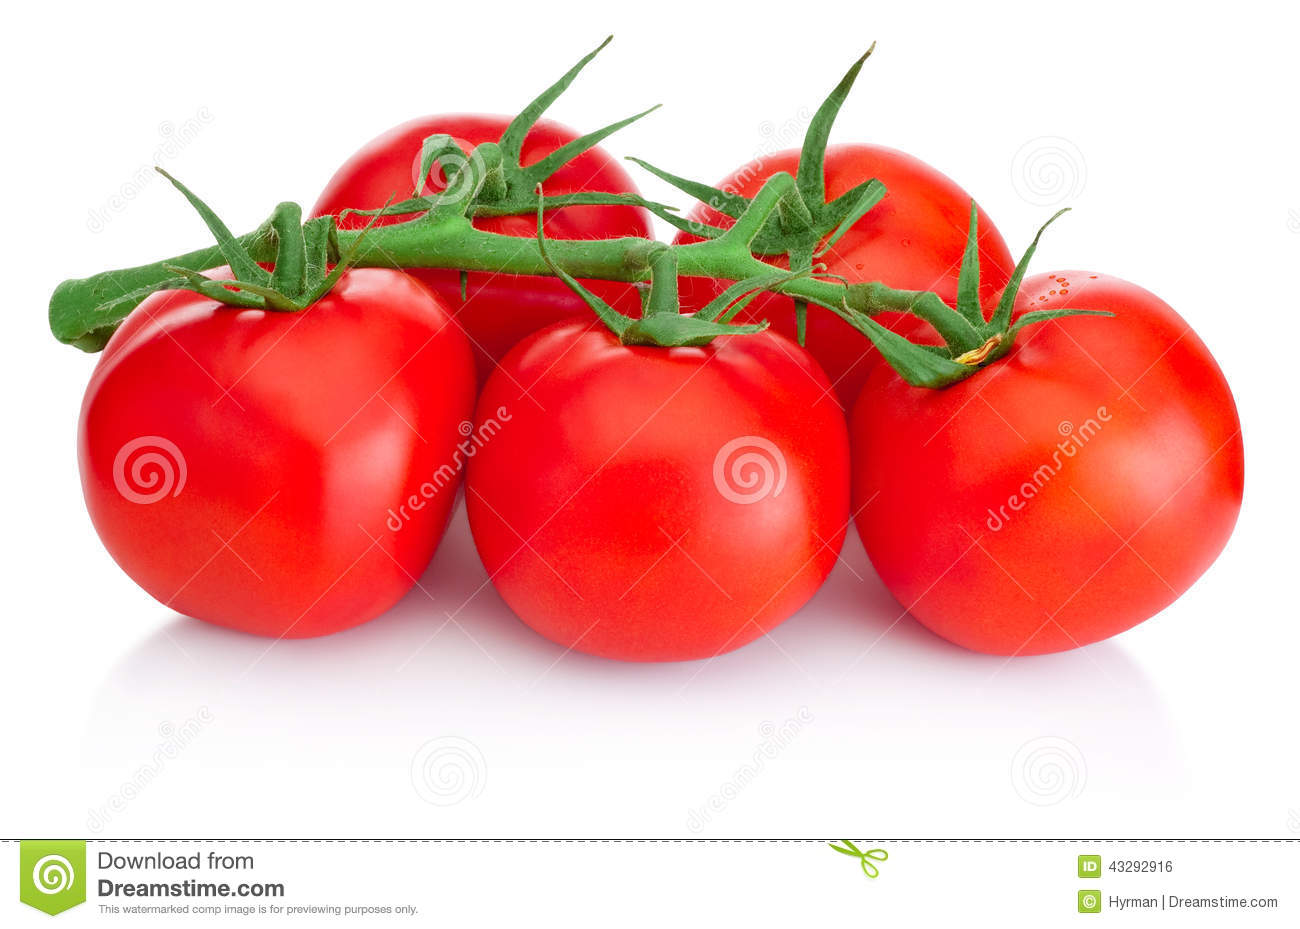 Ripe Cherry tomatoes on branch isolated on white background